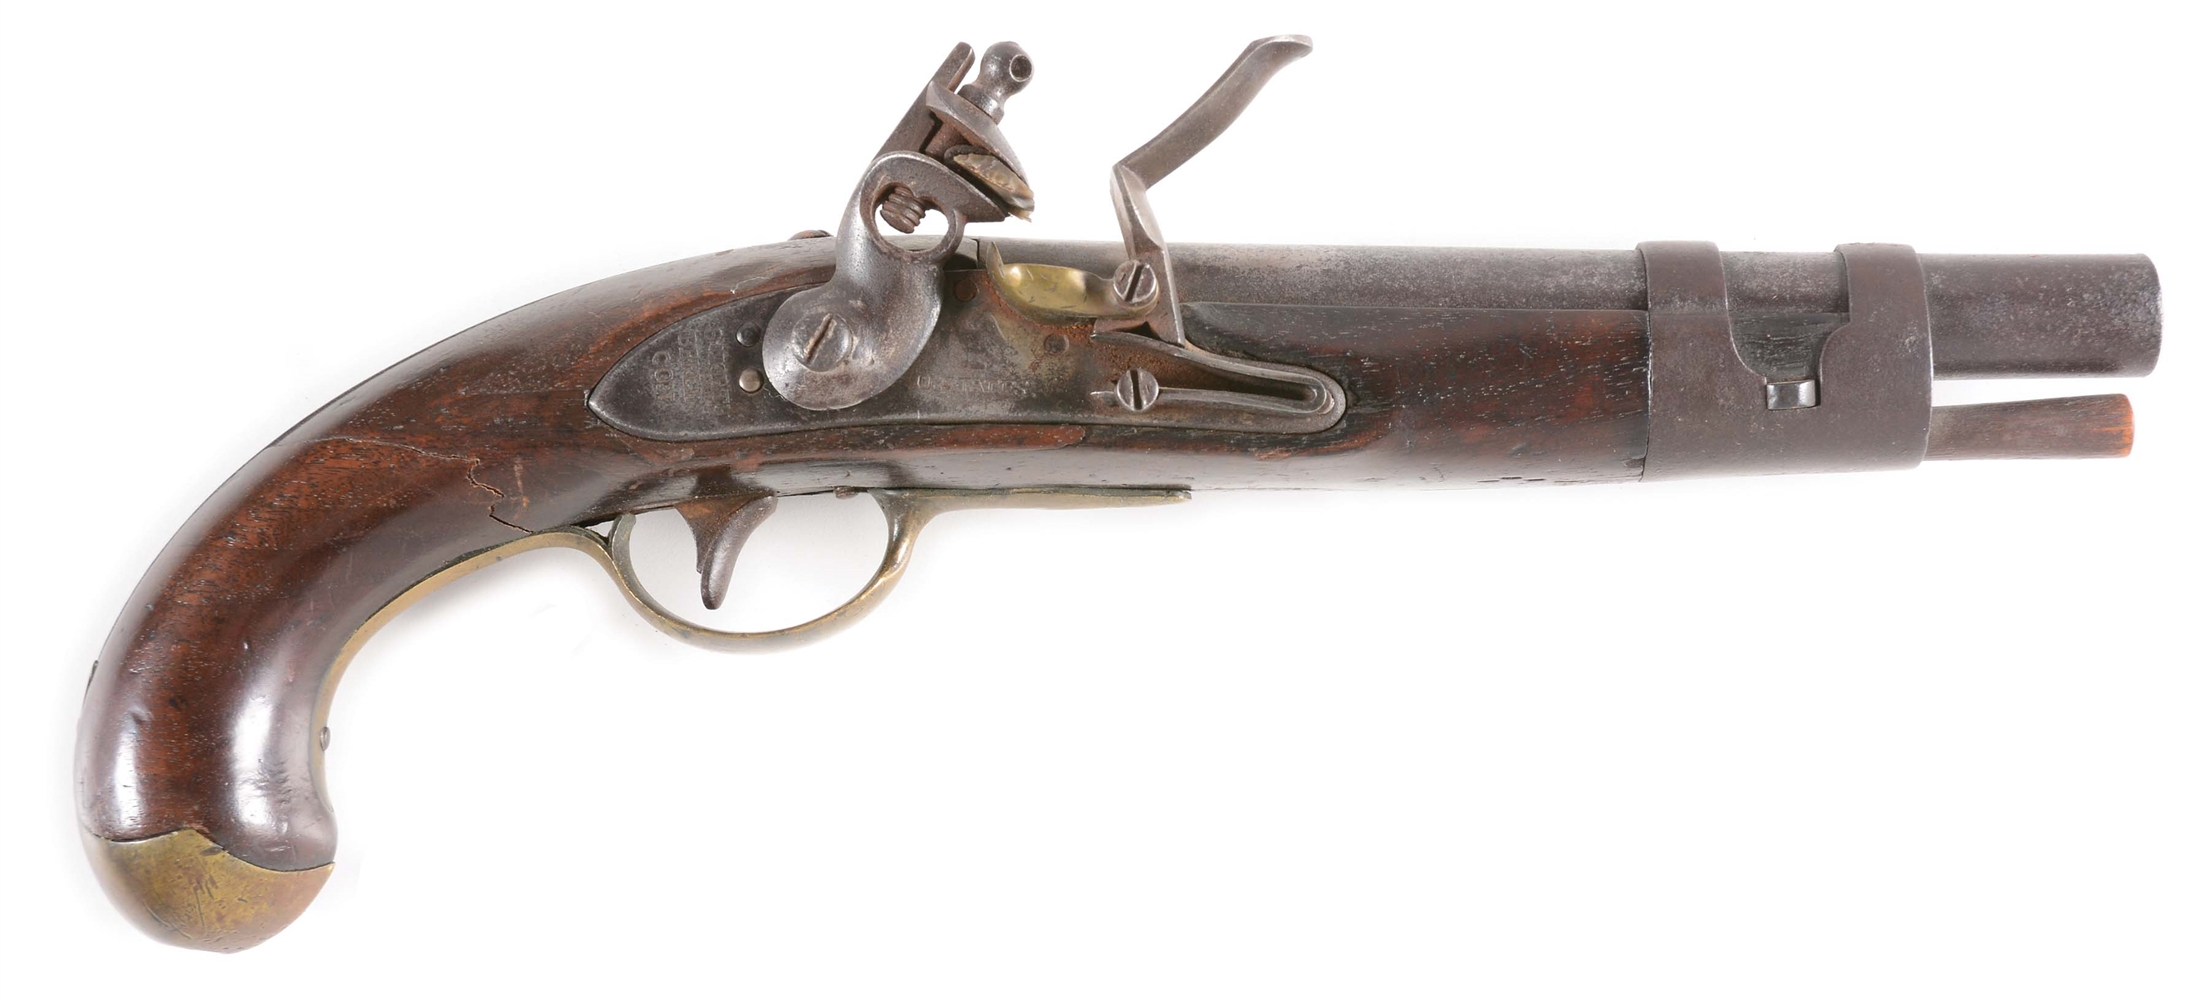 (A) A SCARCE US NORTH BERLIN MODEL 1811 TRANSITIONAL MODEL WITH 1812 MODIFICATION AND IRON DOUBLE STRAP BARREL BAND.